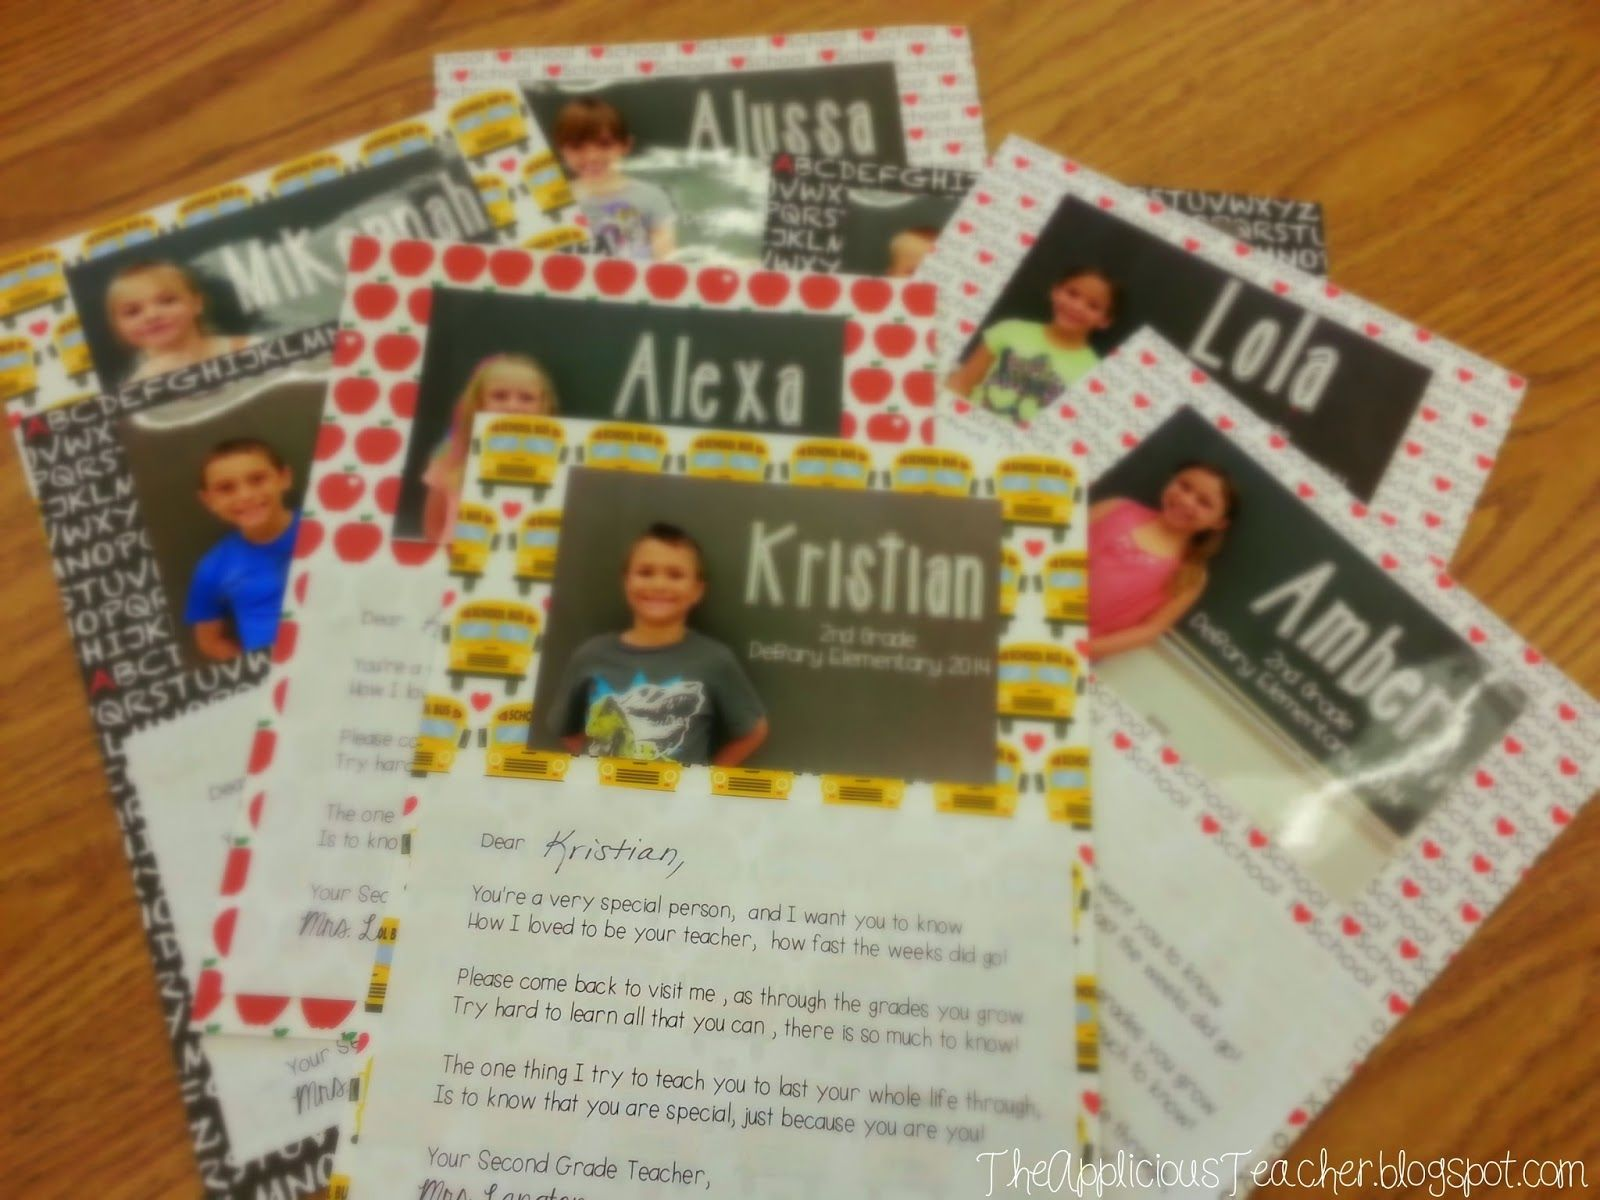 Such a cute student gift idea and easy to do snap a picture add text and print out with end of the year letter fro each student